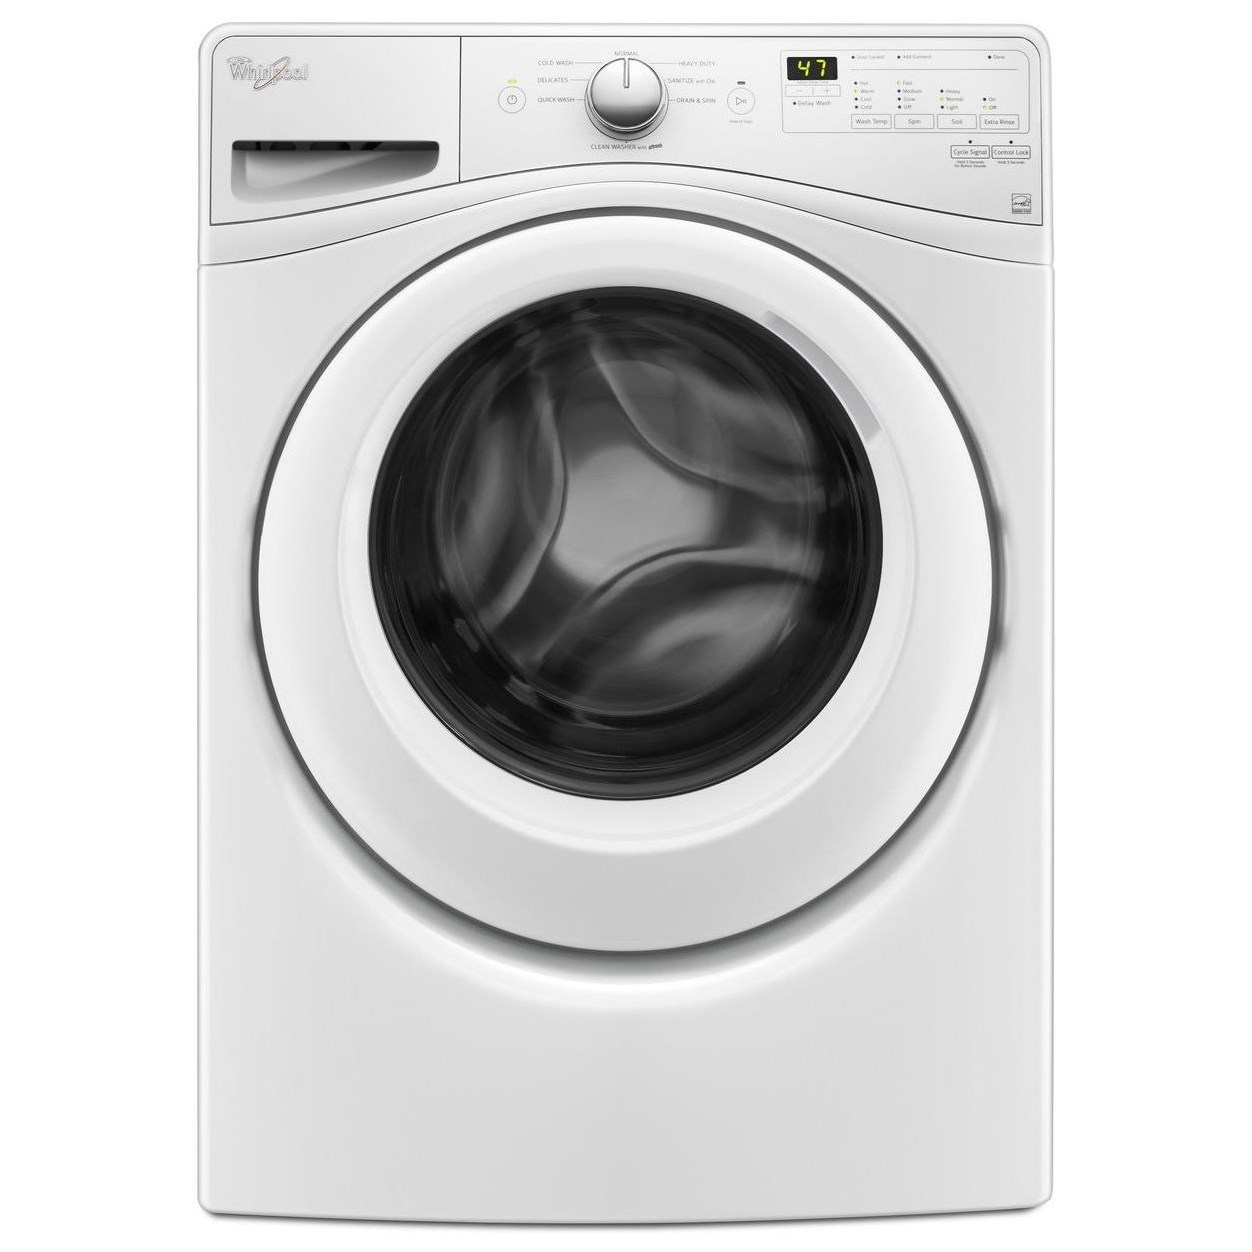 Whirlpool Front Load Washers 4.2 cu. ft. Front Load Washer - Item Number: WFW7590FW